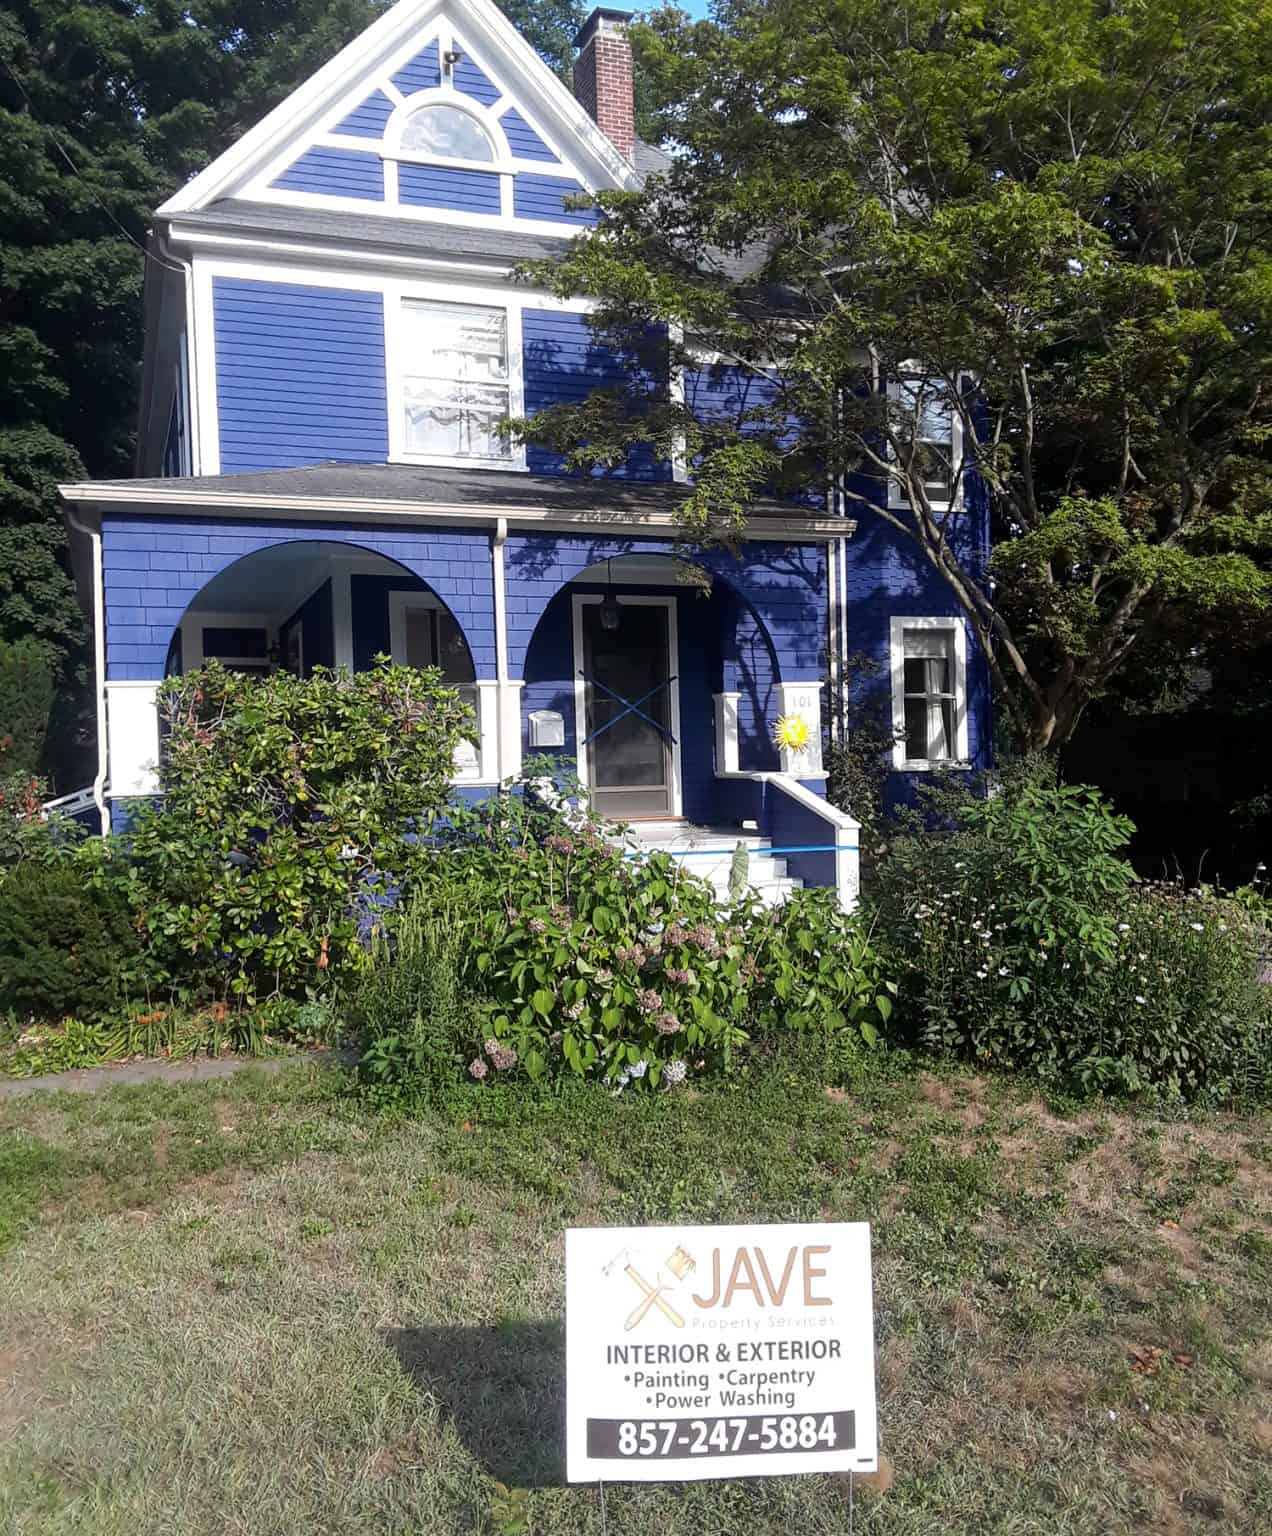 Exterior Painting by Jave